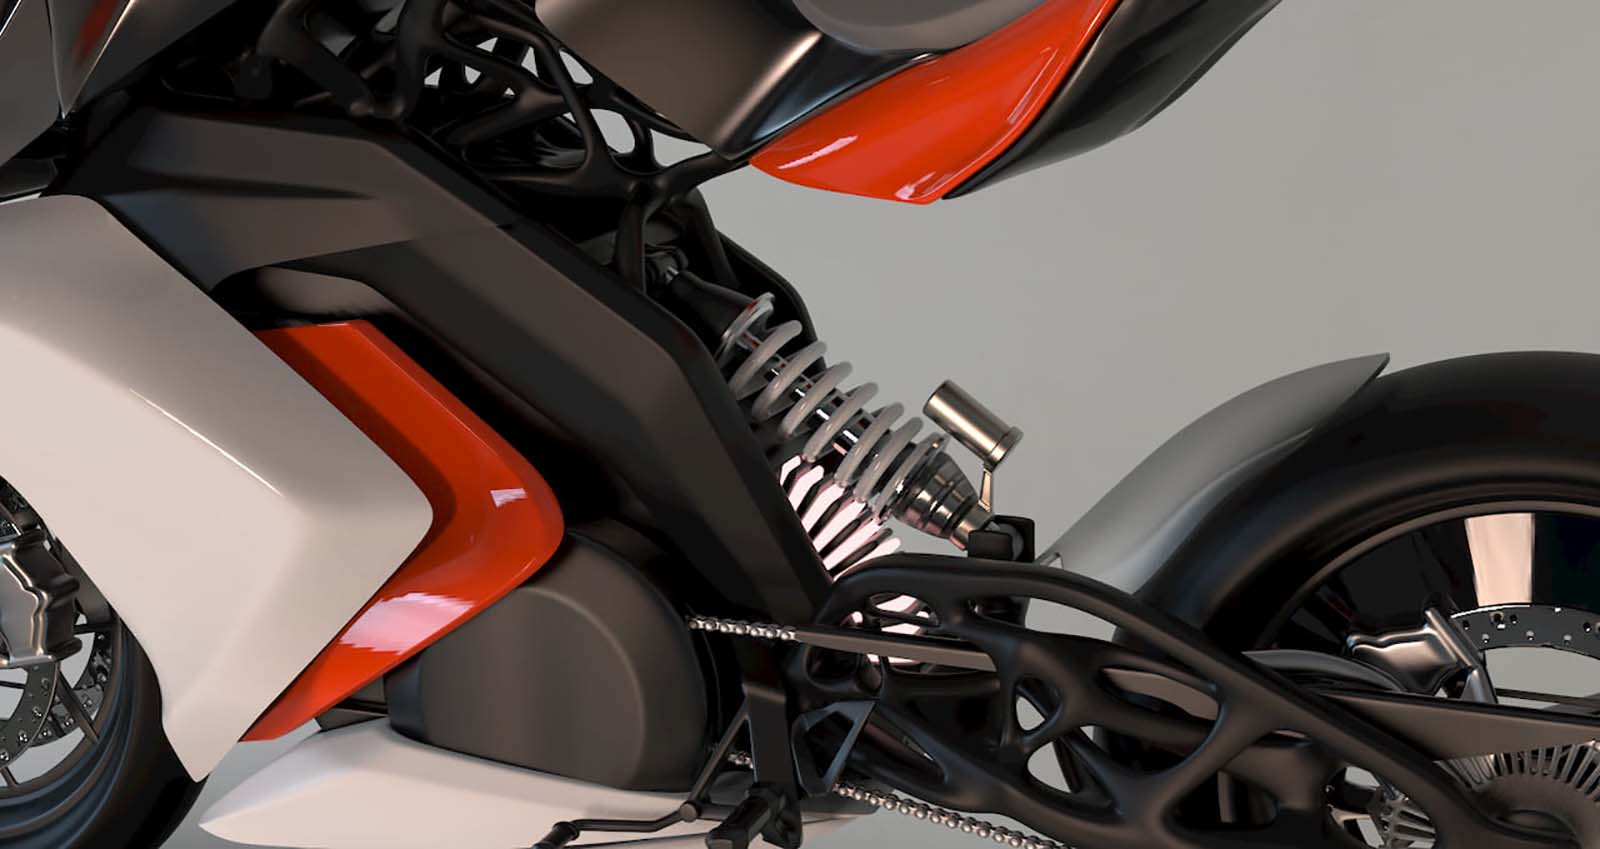 KTM-RC-Electric-motorcycle-concept-Mohit-Solanki-04